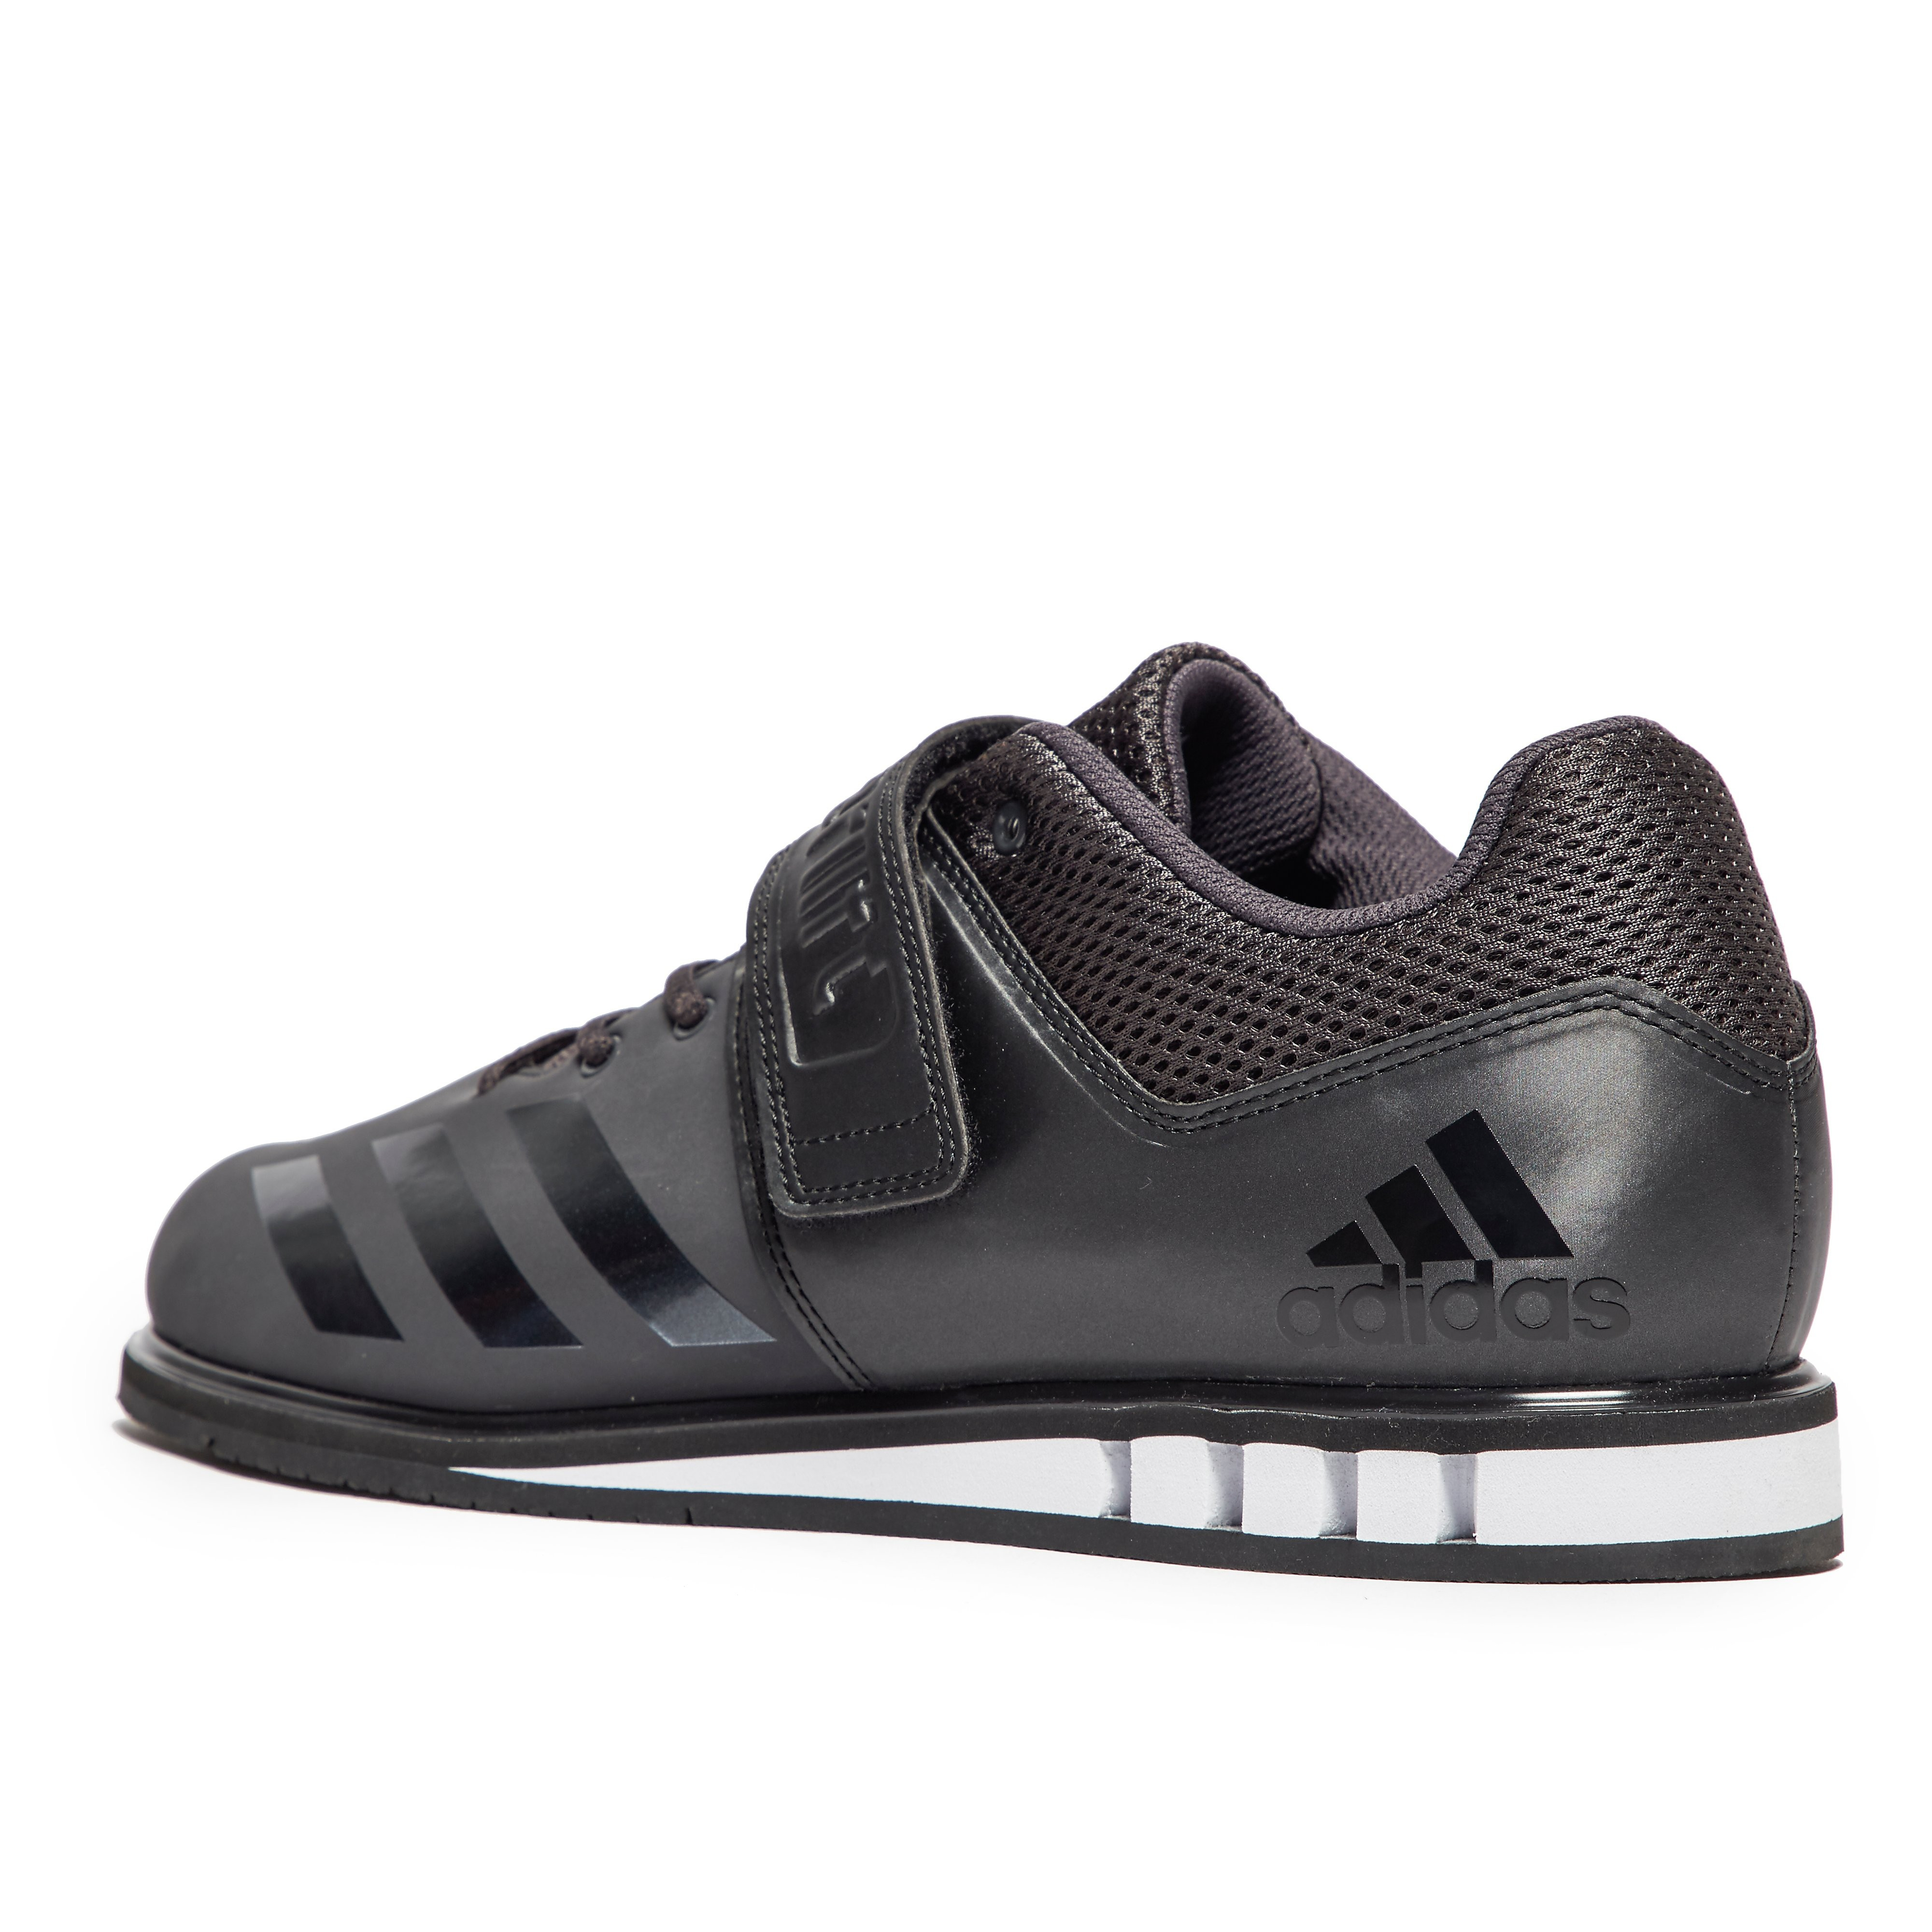 adidas POWERLIFT.3.1 Men's Weightlifting Shoes